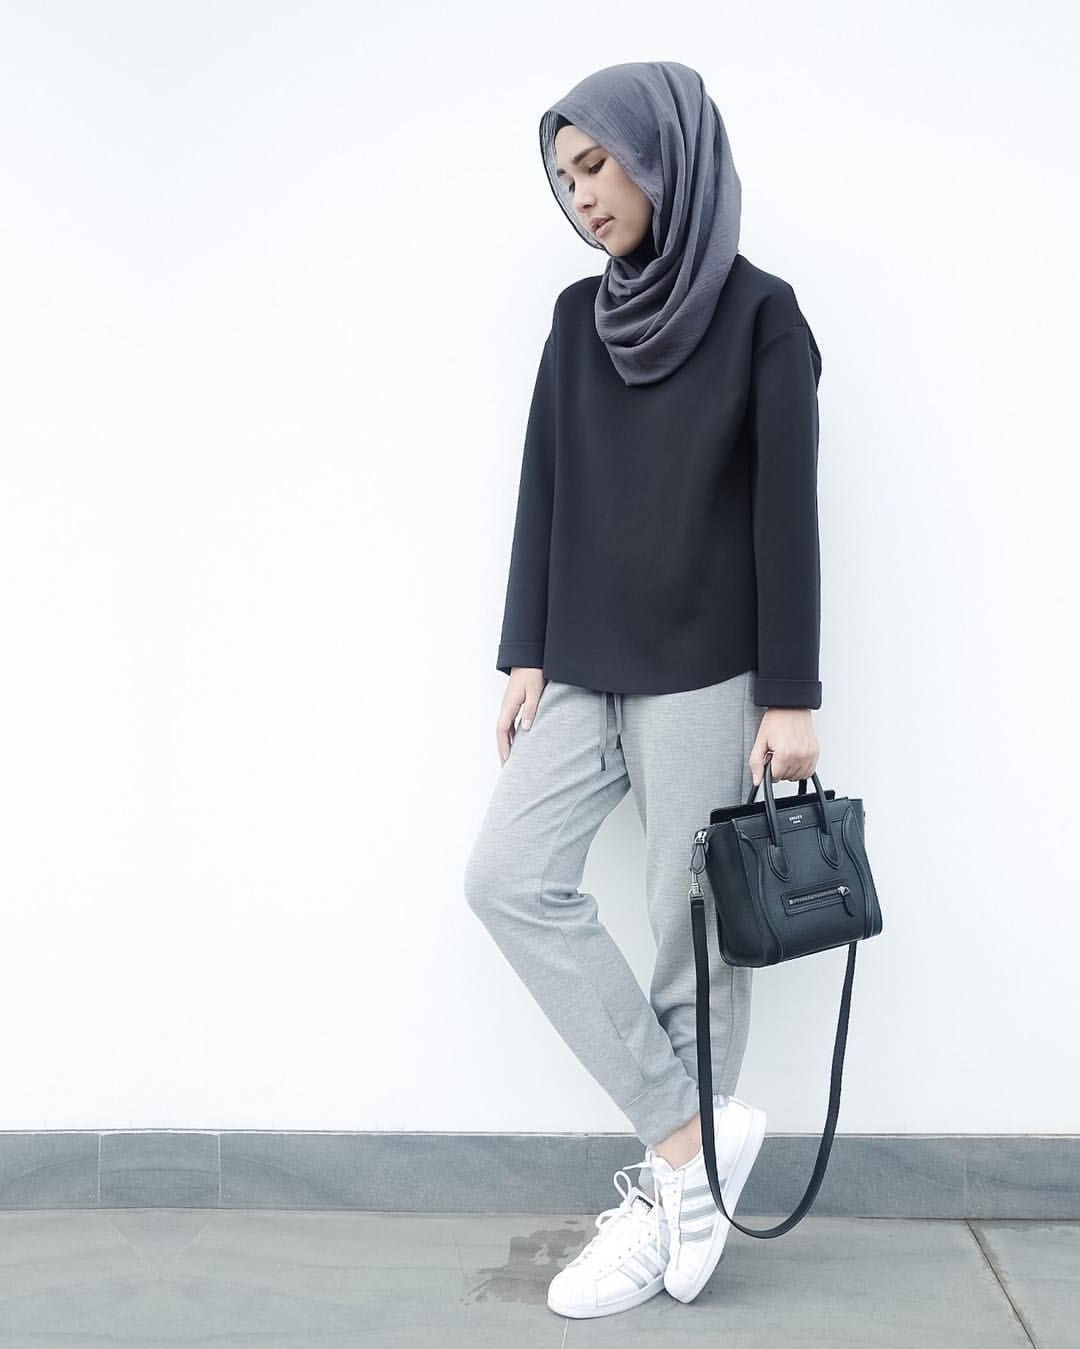 Model Fashion Muslimah Casual D0dg See This Instagram Photo by Ranihatta • 3 123 Likes